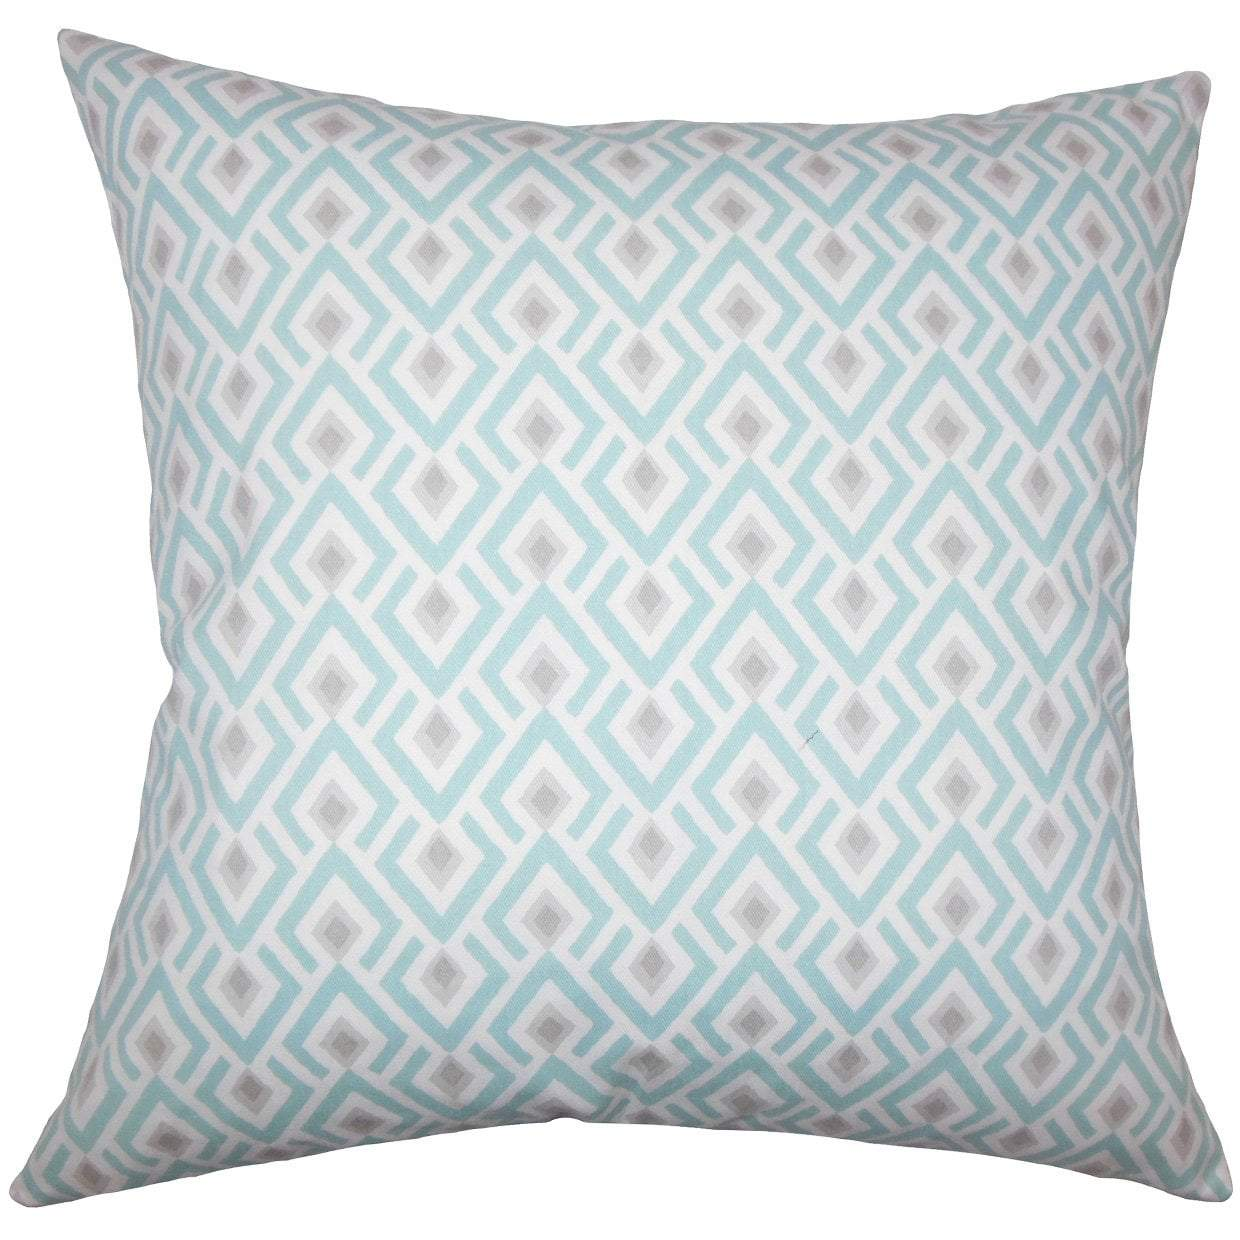 Multi Cotton Geometric Contemporary Throw Pillow Cover